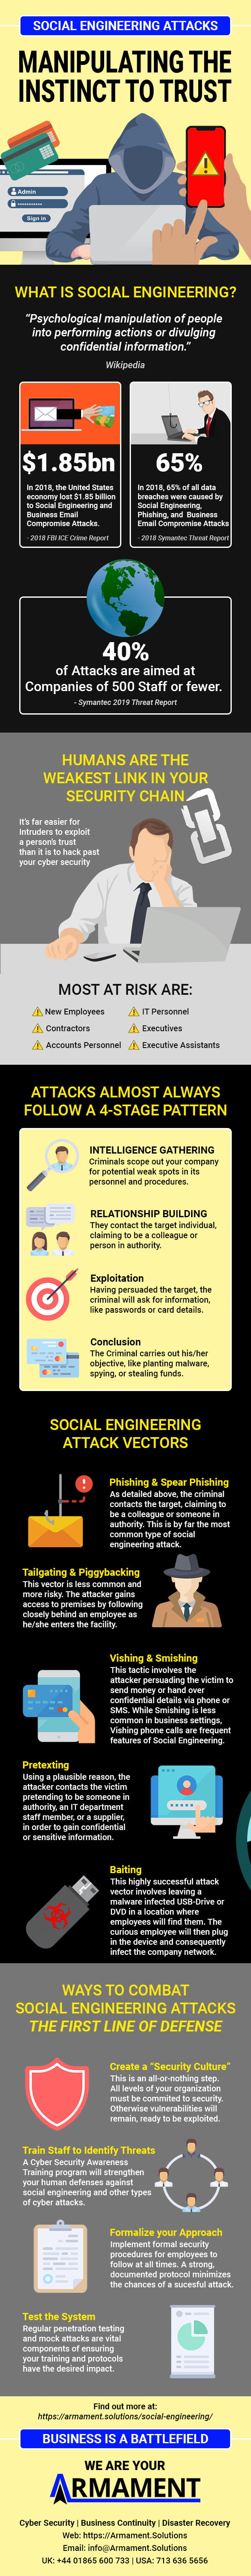 Social Engineering Attack Lifecycle - Infographic